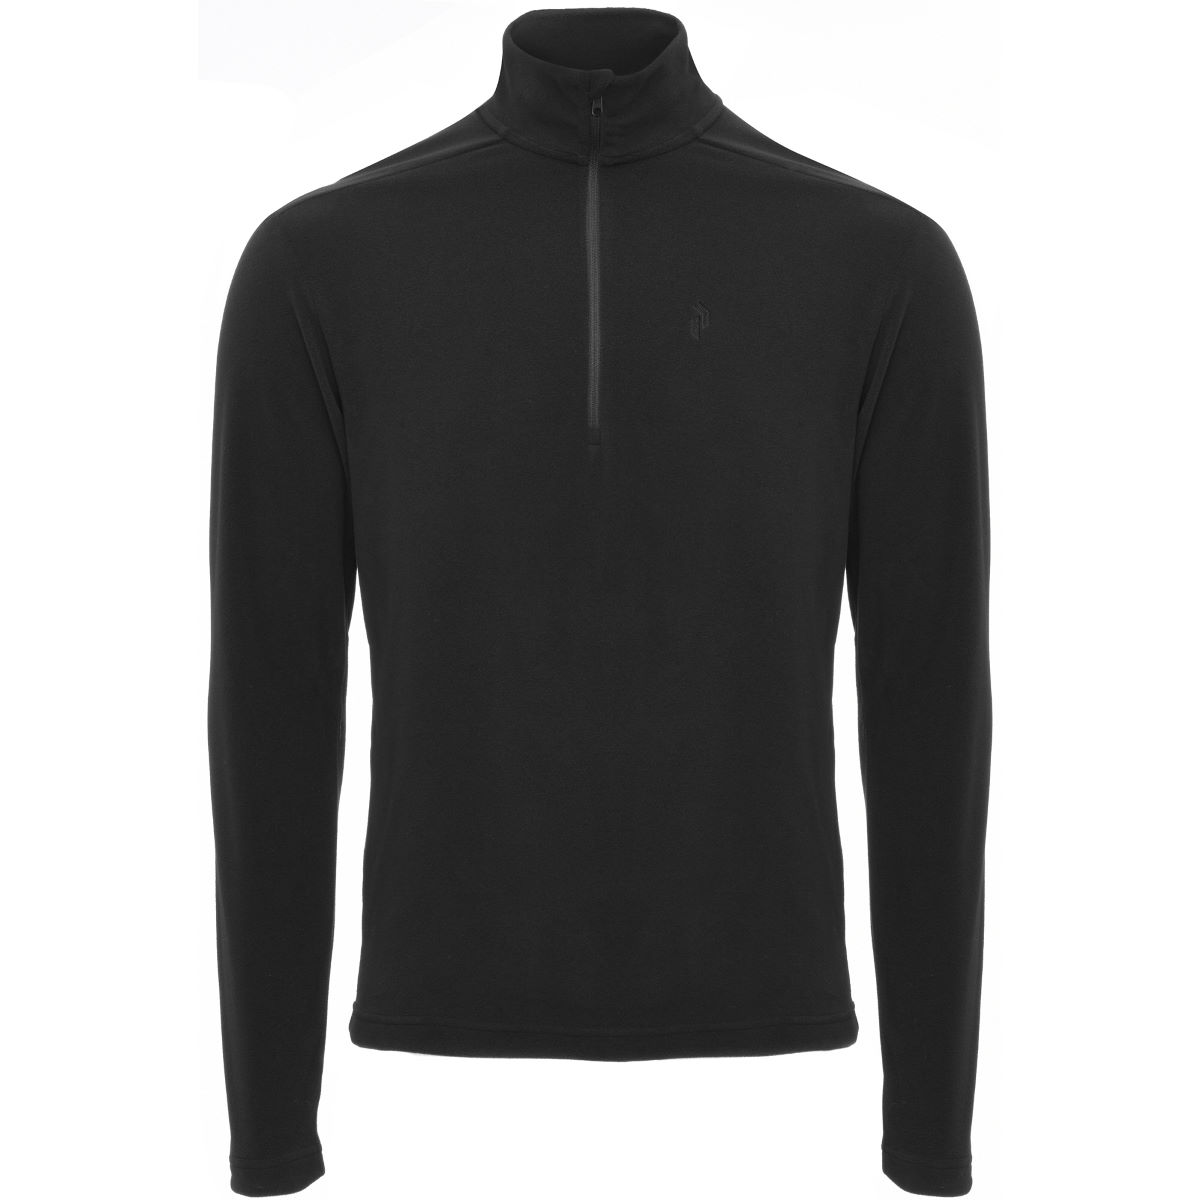 Peak Performance LT Micro Half Zip - L Black | Jumpers and Hoodies